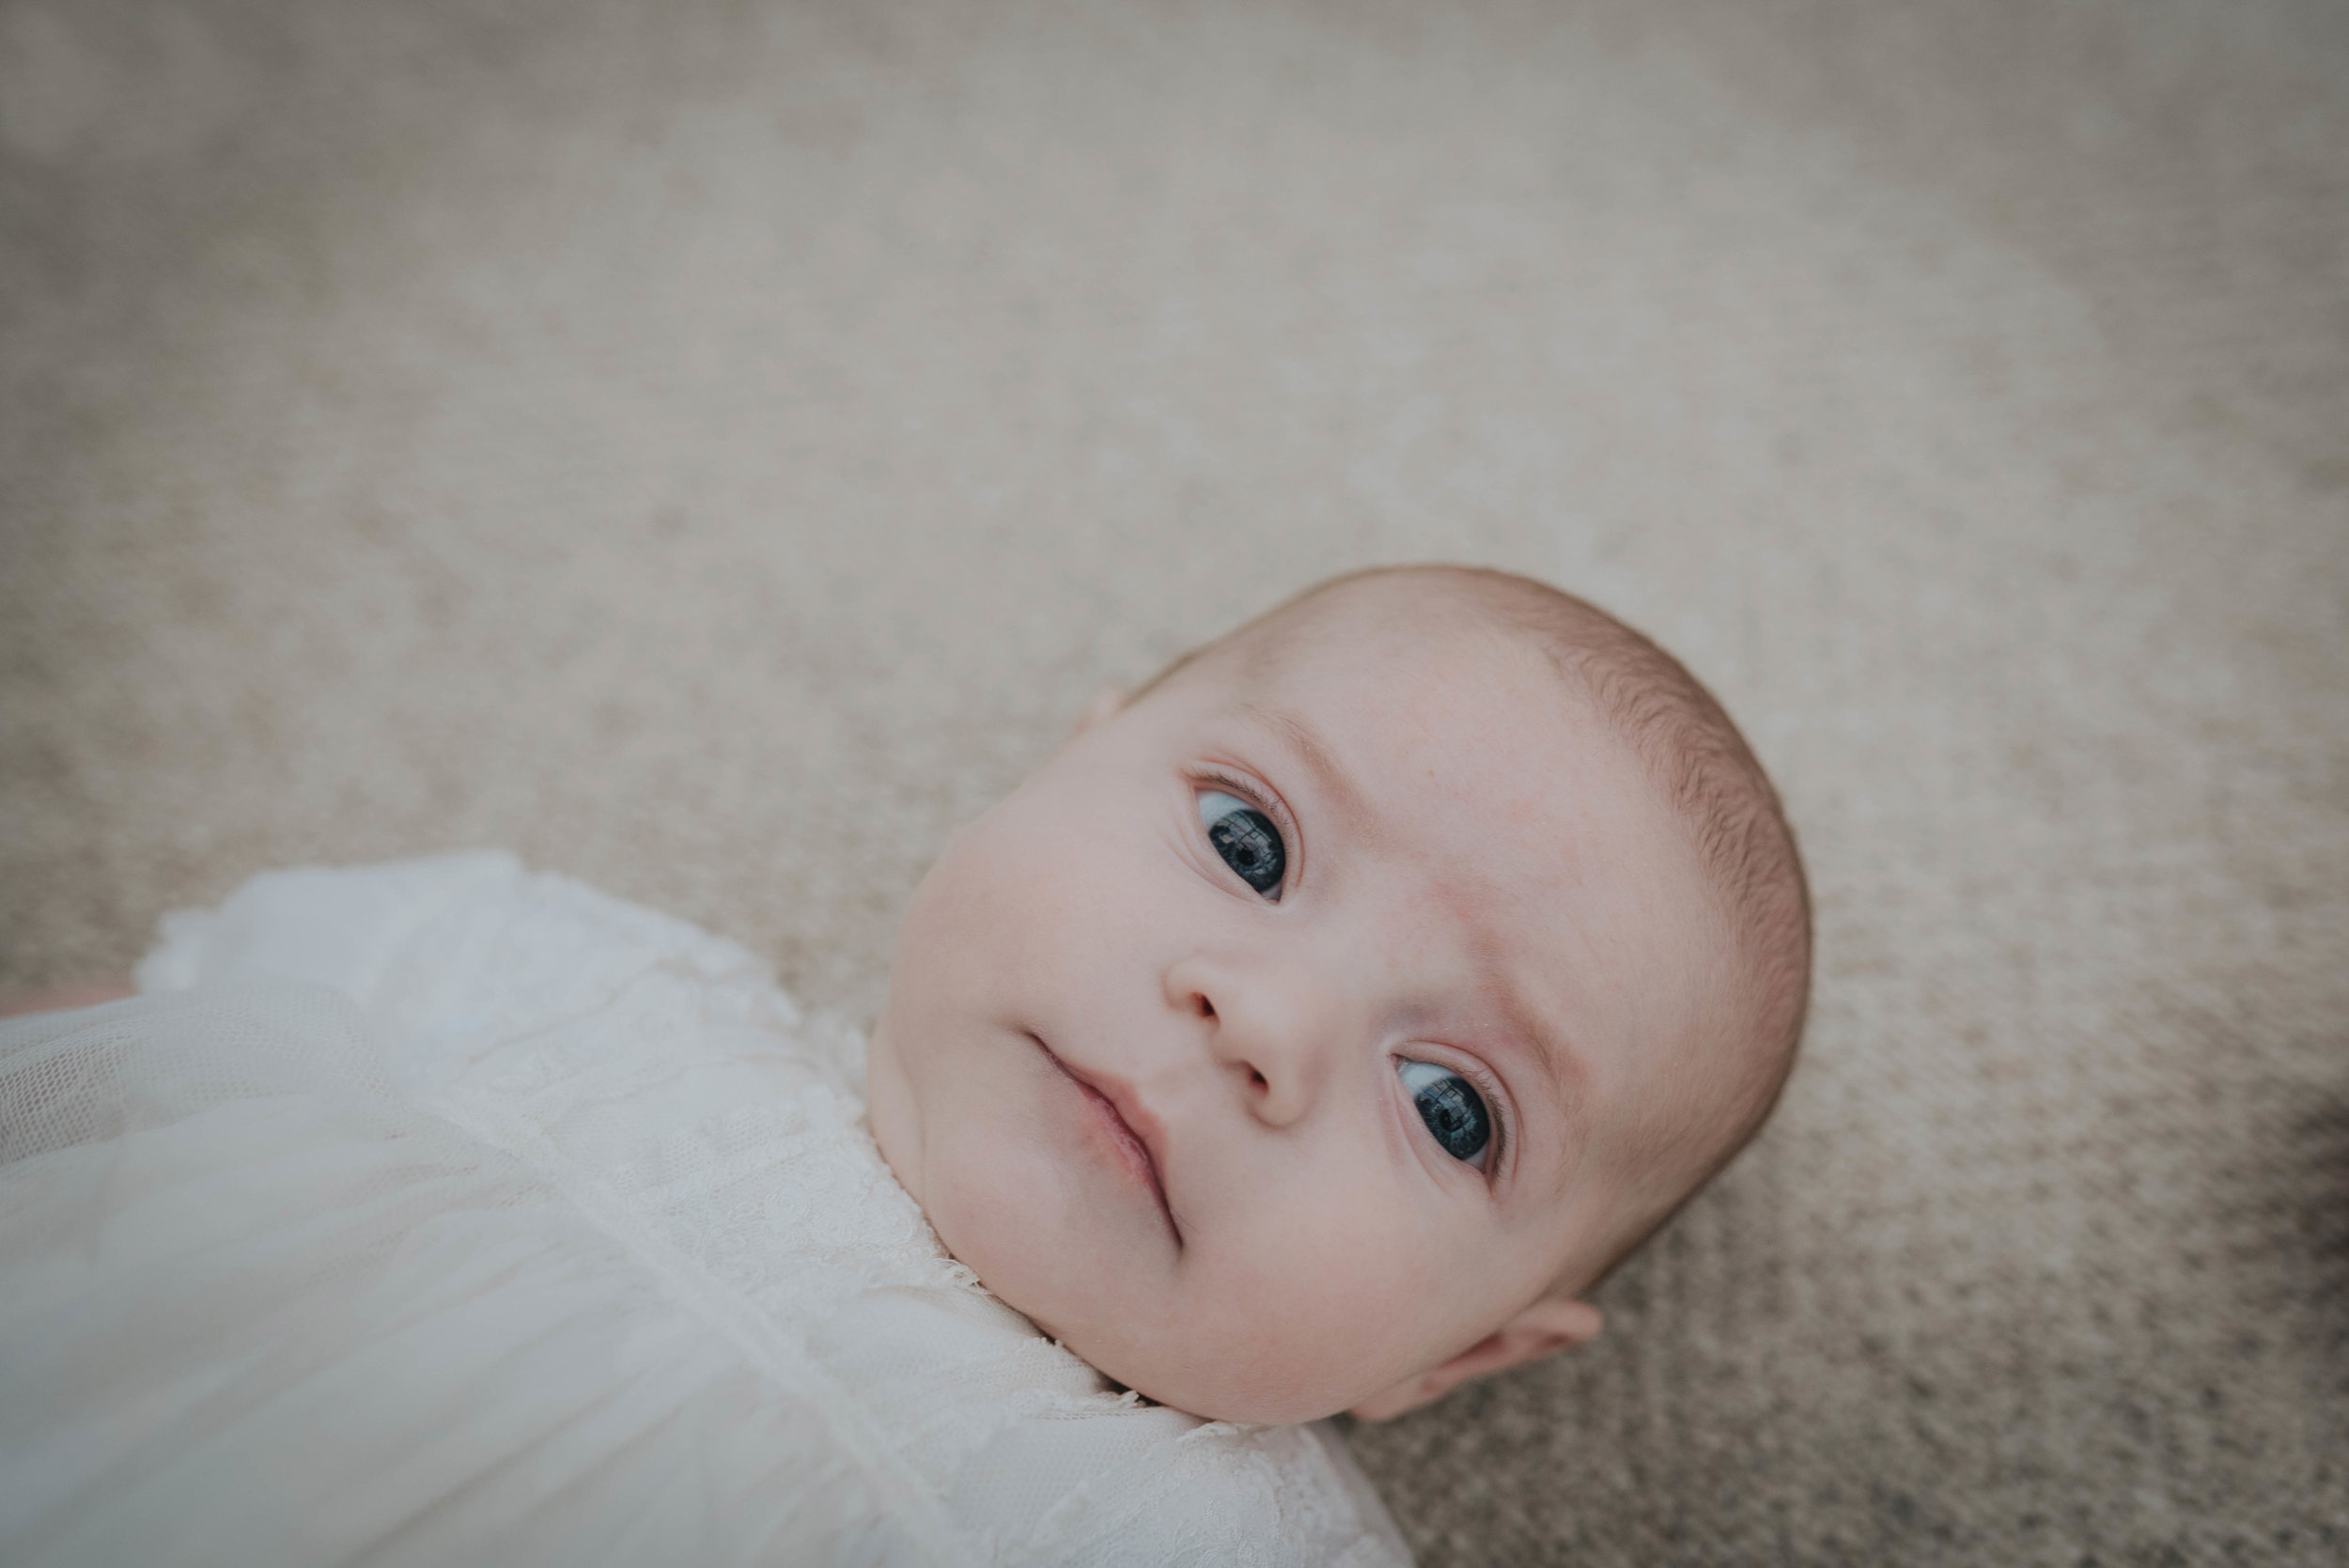 A portrait of newborn baby Harry looking directly into the camera.